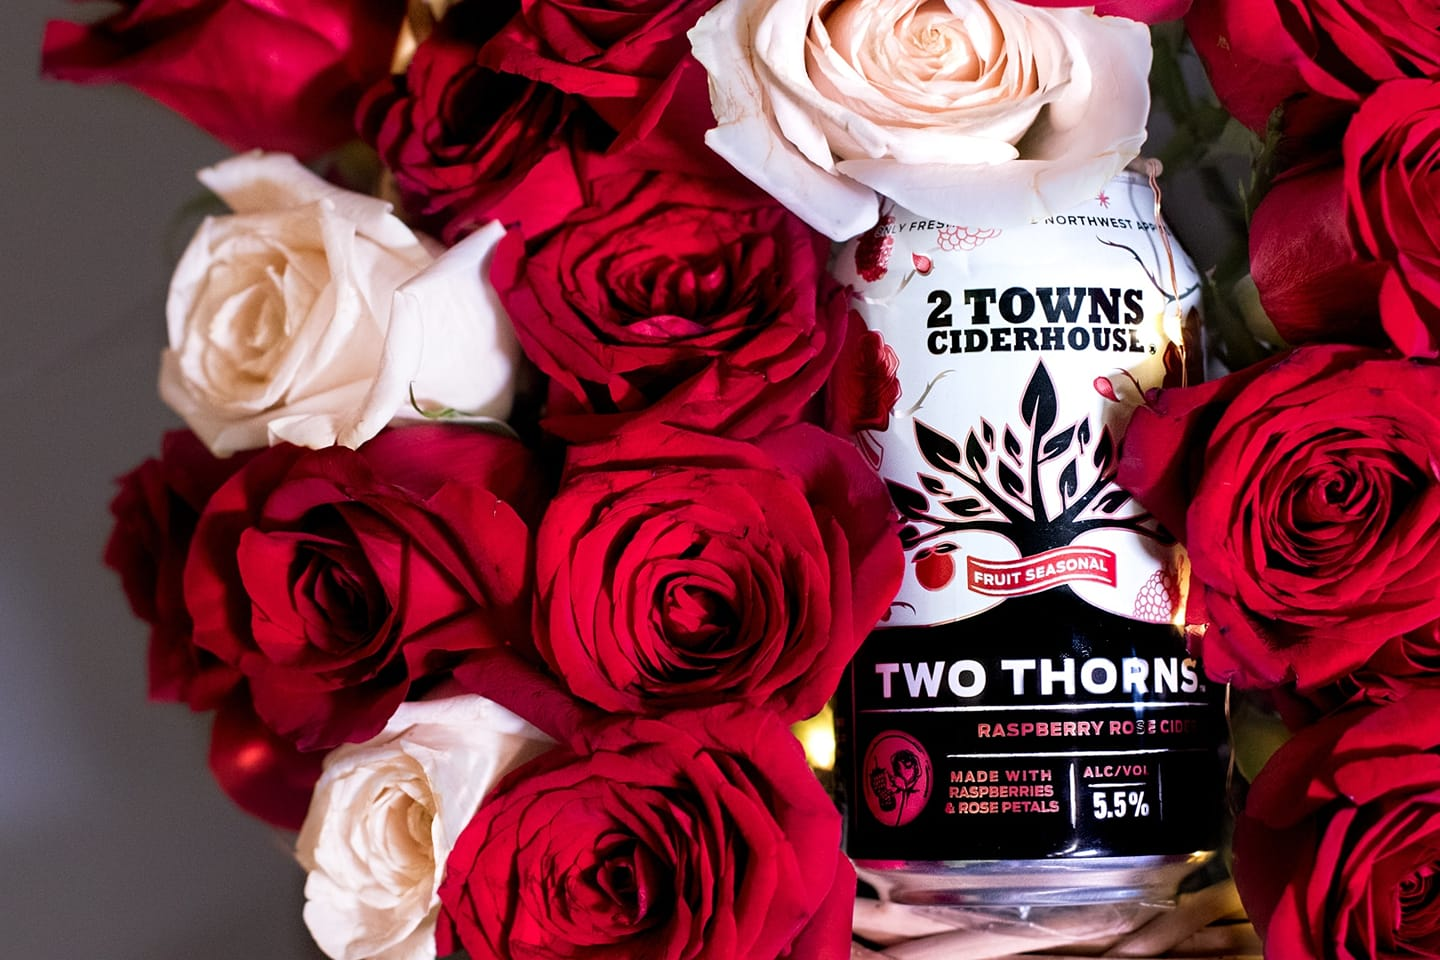 image of Two Thorns courtesy of 2 Towns Ciderhouse